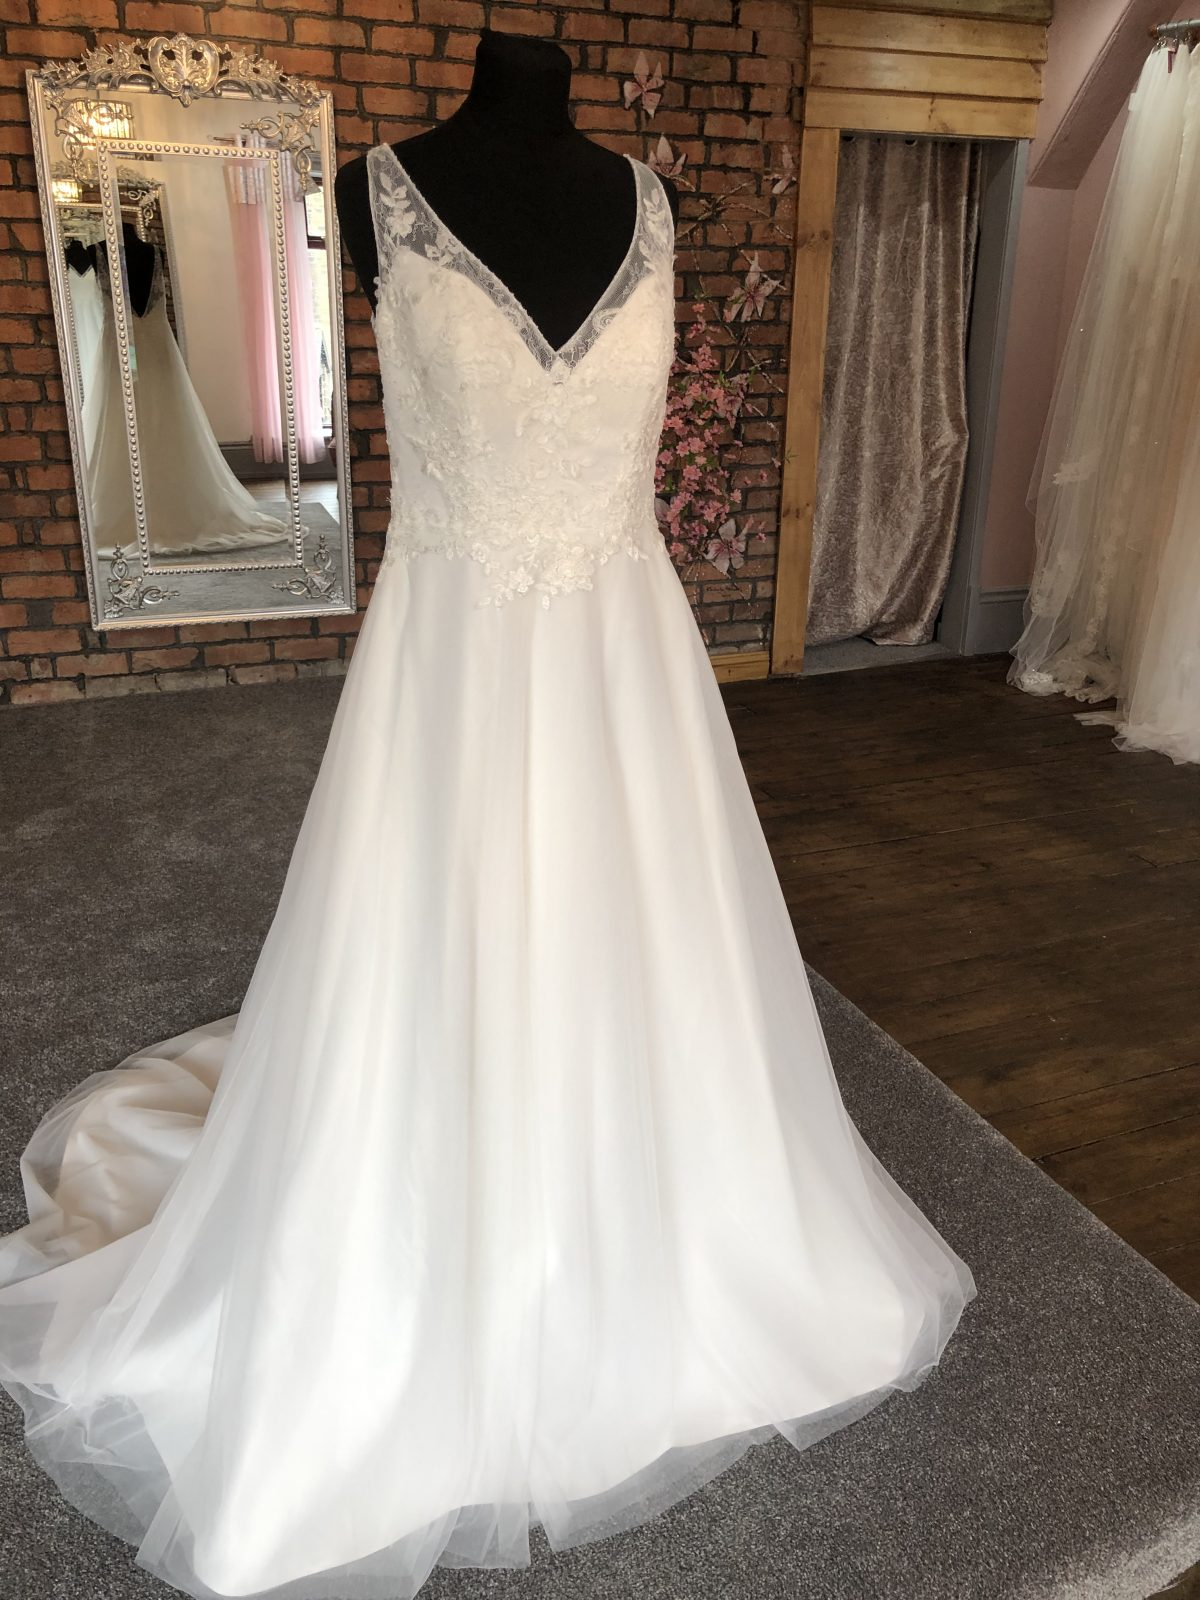 Mascara Wedding Dress 1